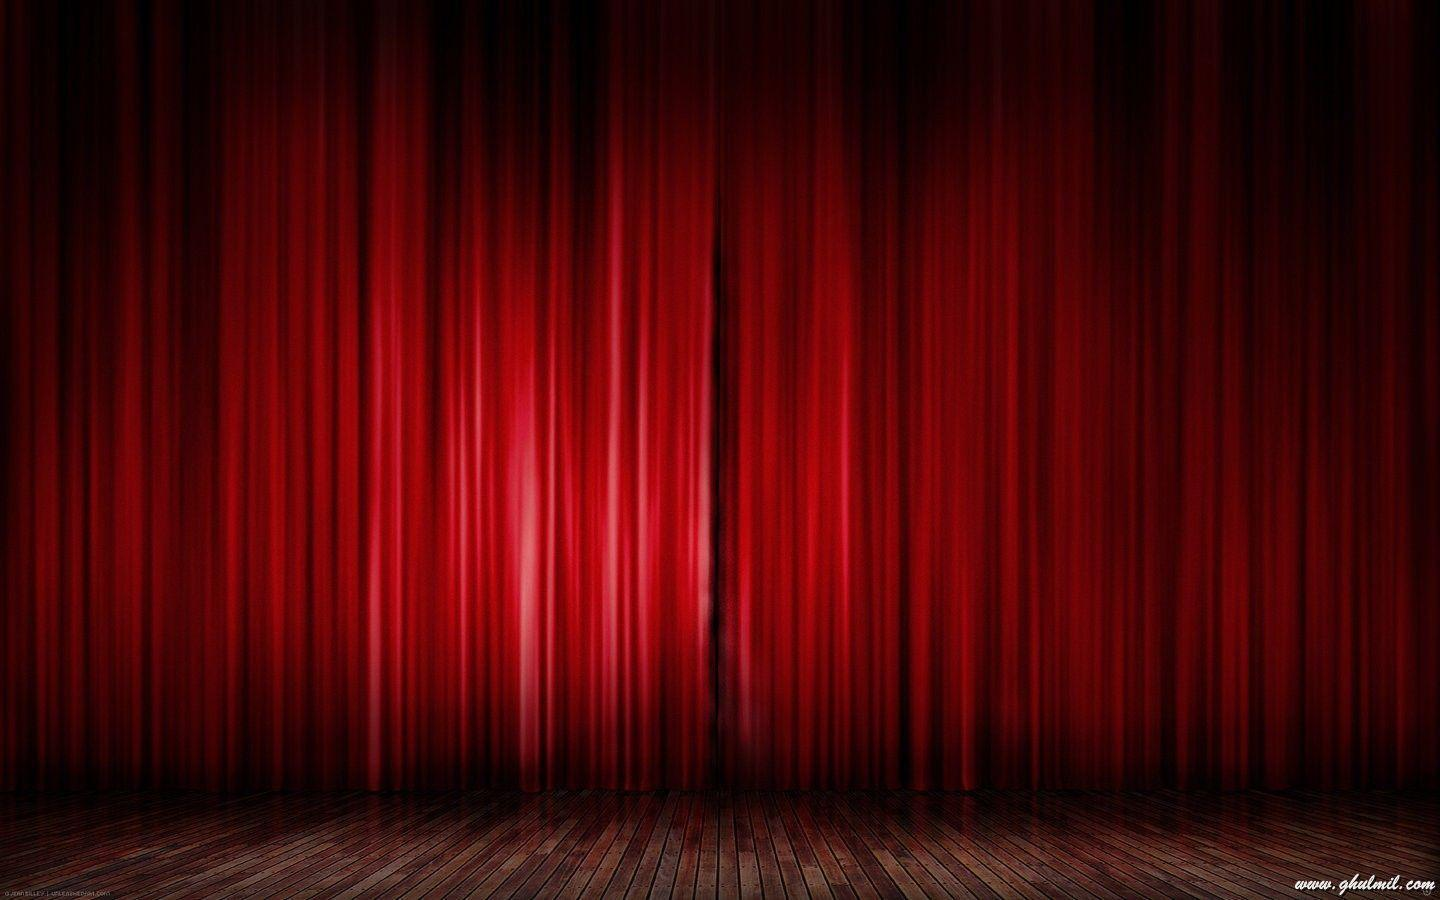 Stage Backgrounds Wallpaper Cave HD Wallpapers Download Free Images Wallpaper [1000image.com]